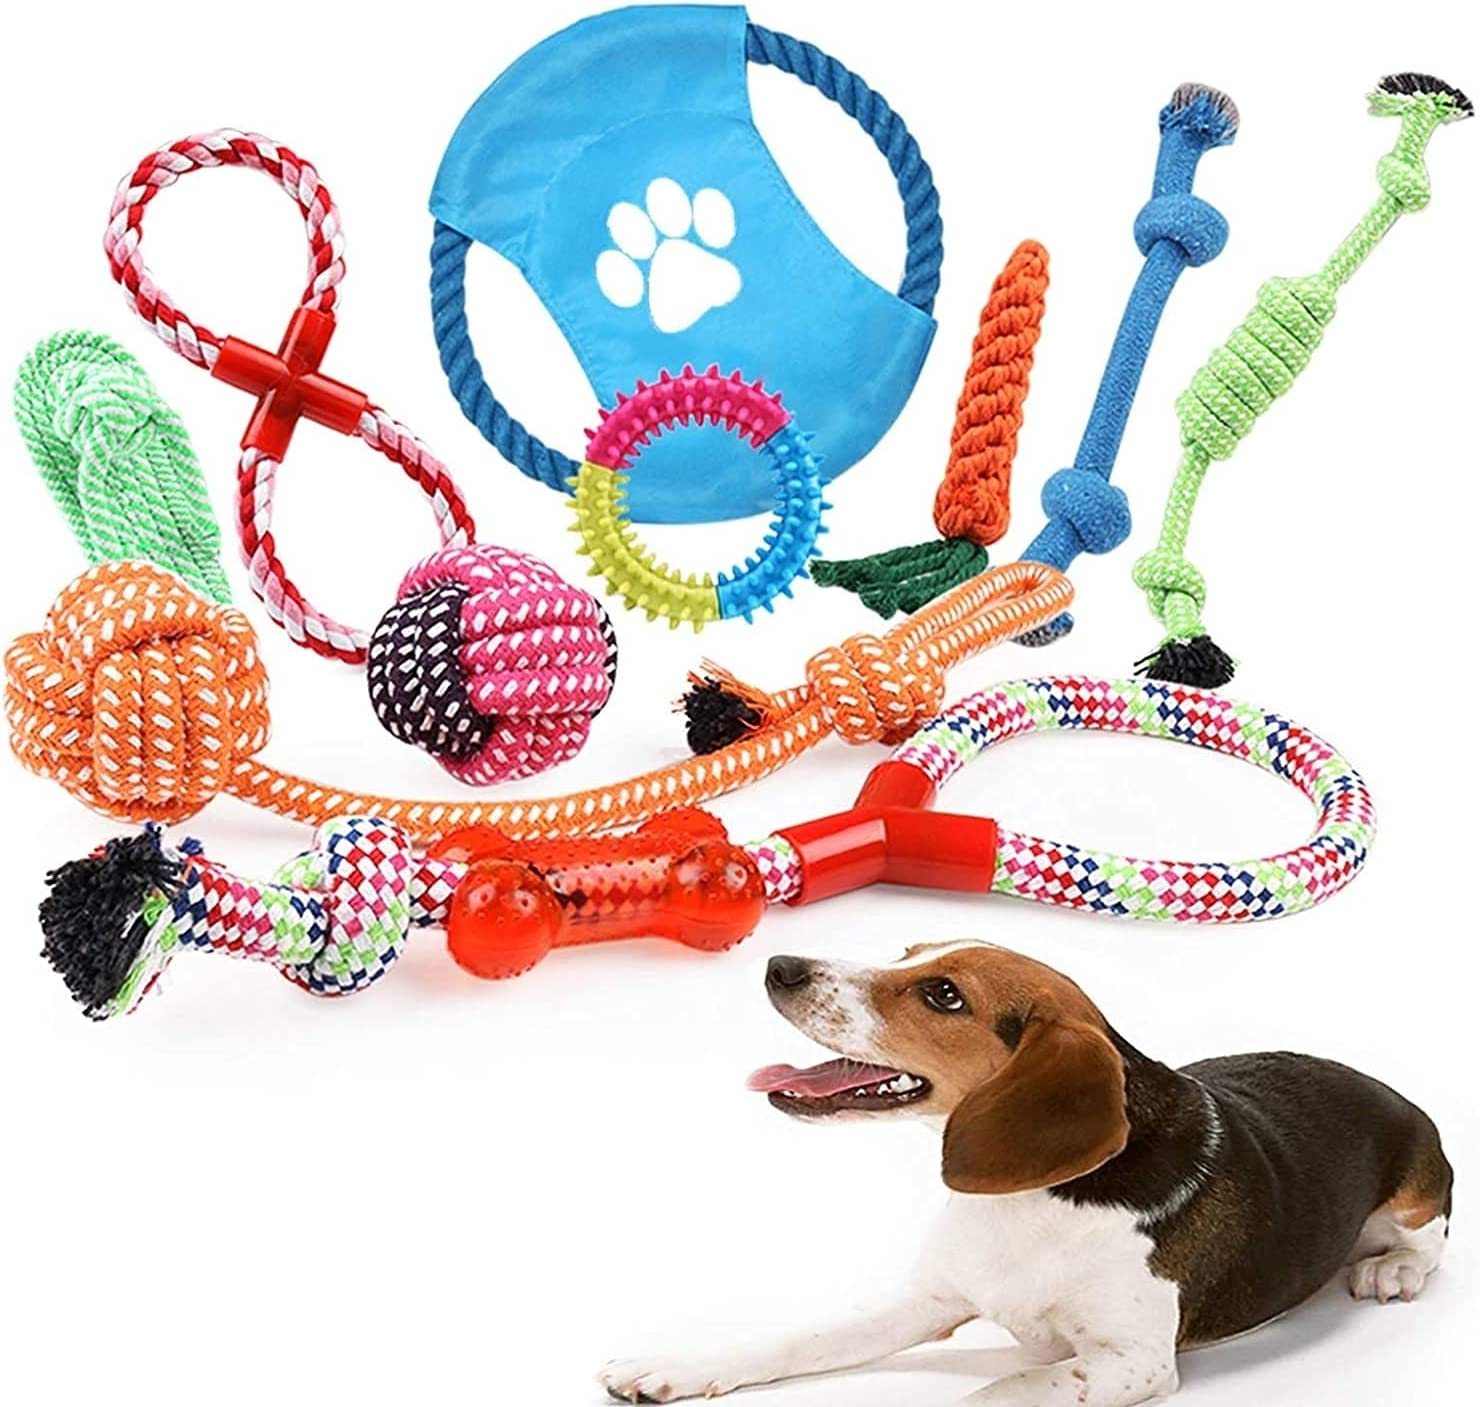 GLLP Dog Rope Toys Set 10 Includin Pieces Pet 67% OFF of fixed price Fees free Chew of